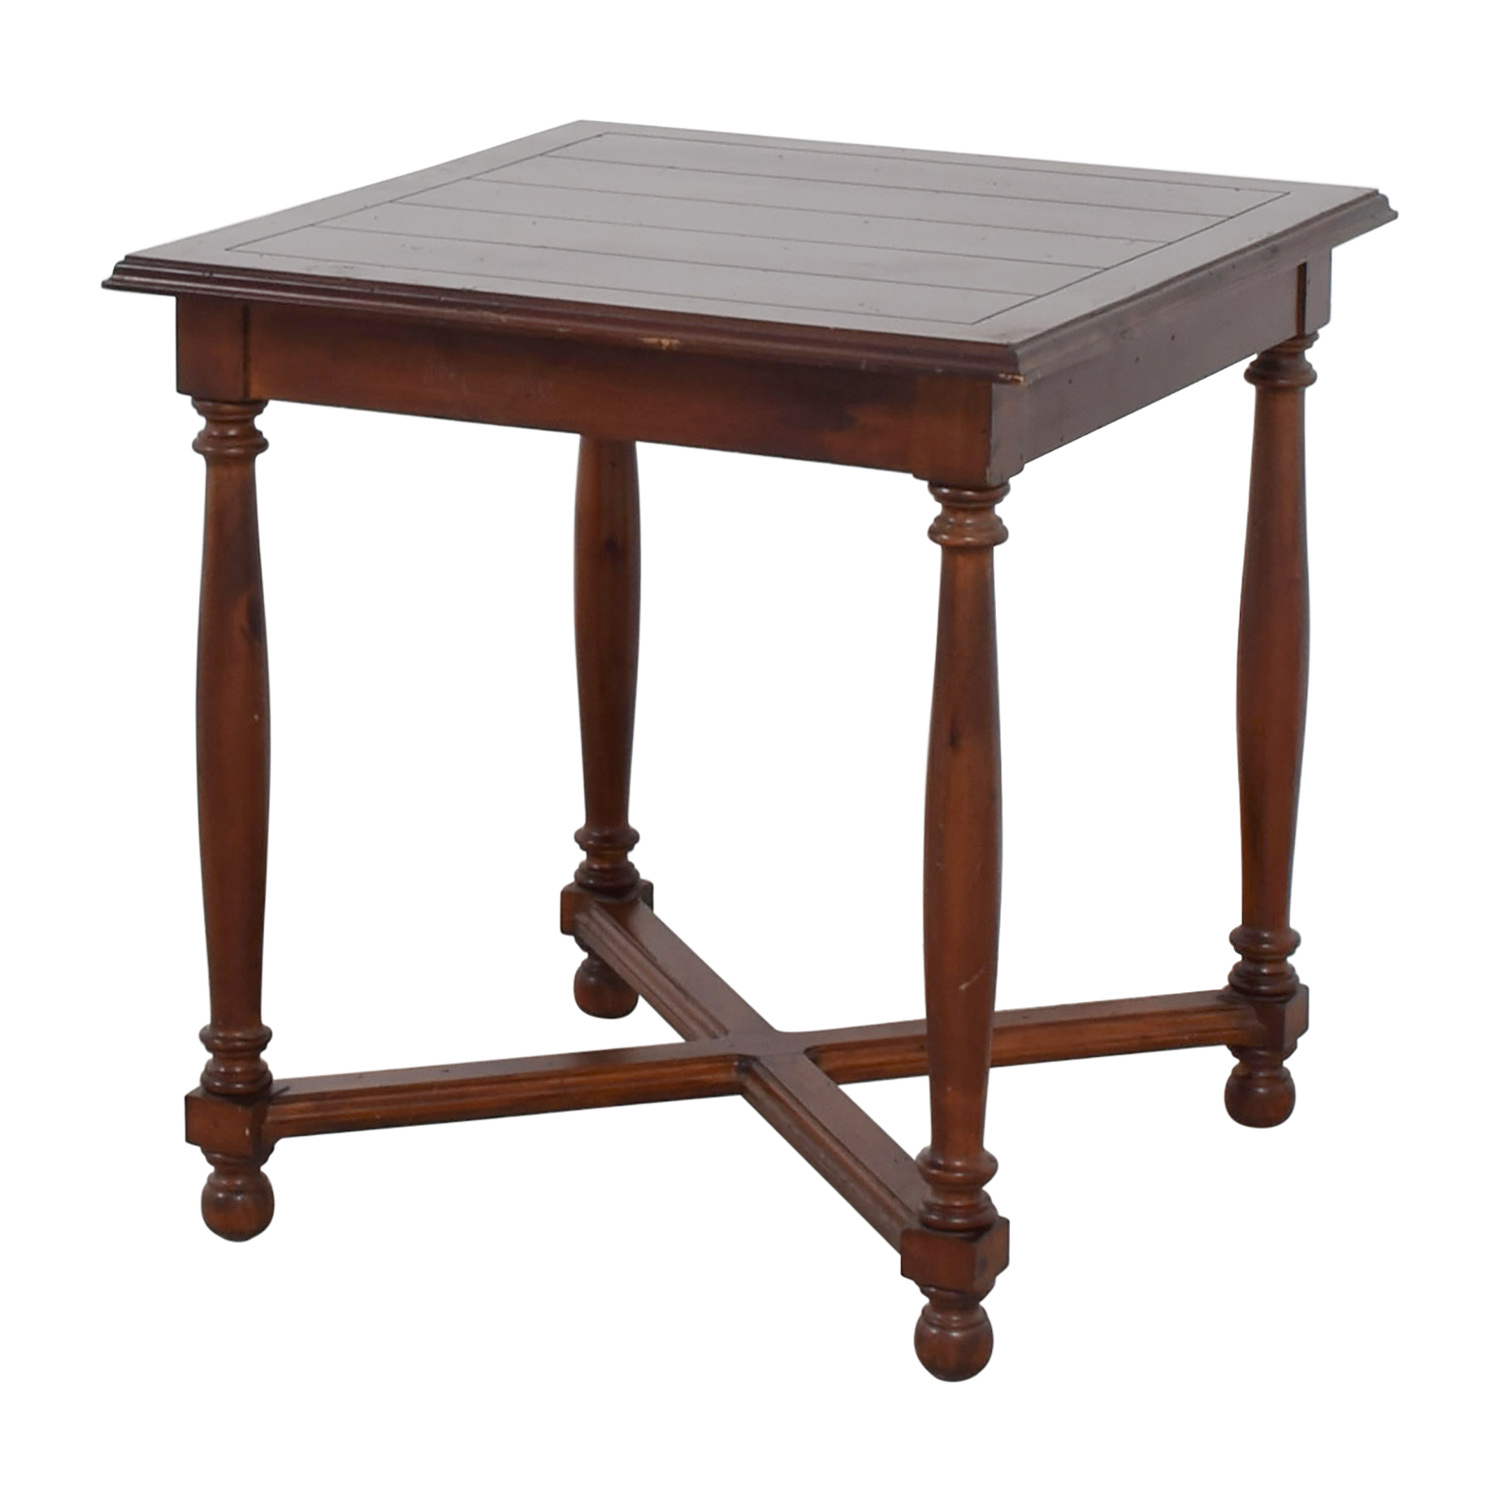 Furniture Masters Furniture Masters Crossed Base End Table nyc